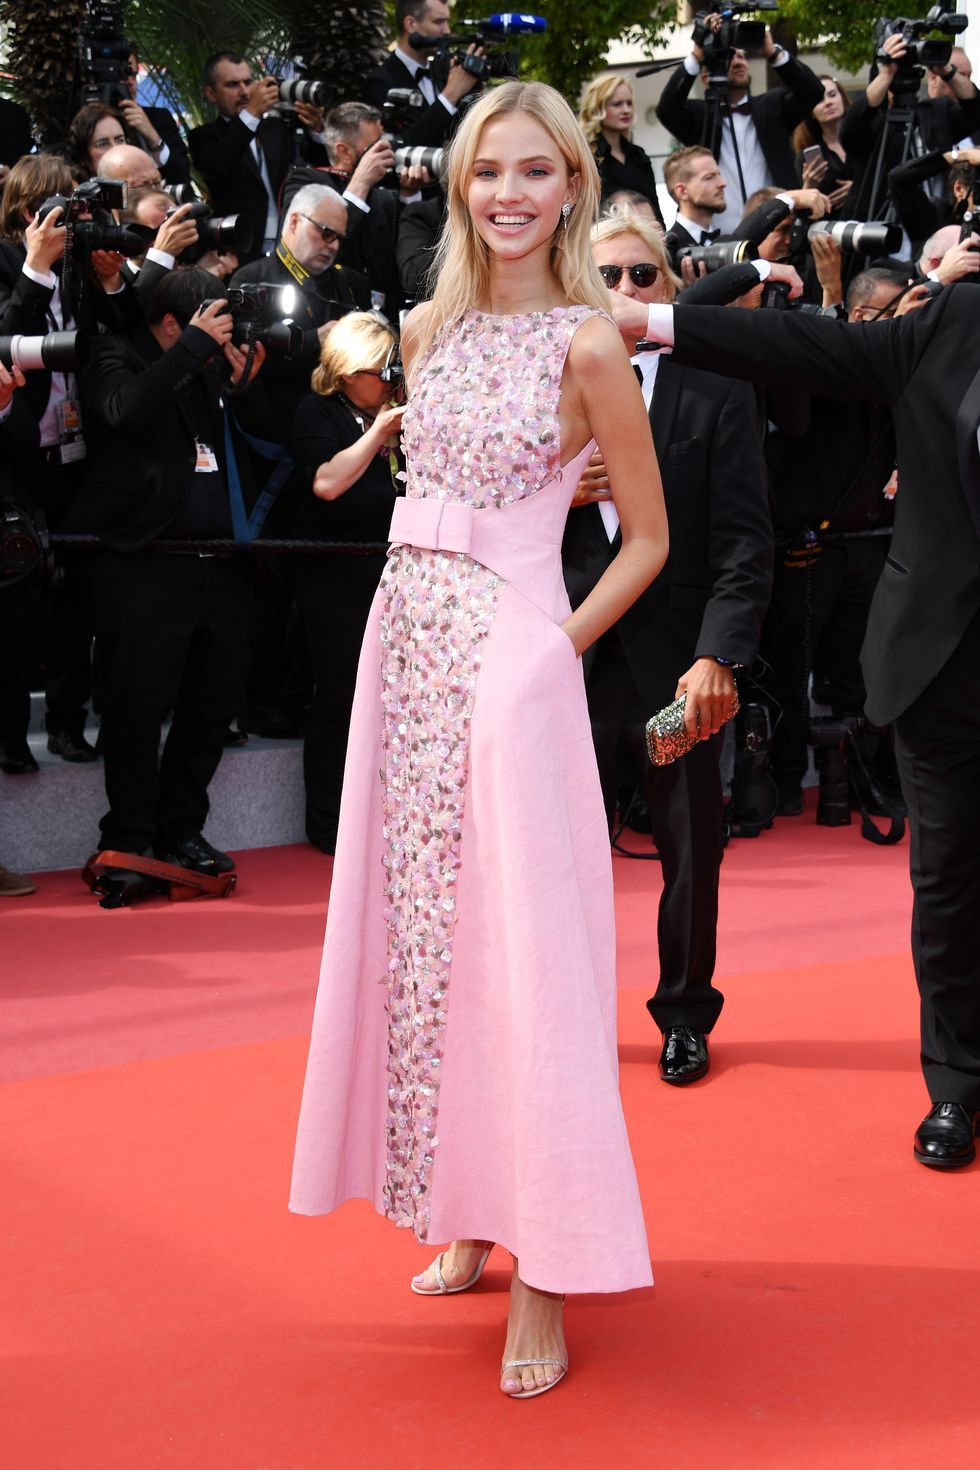 Sasha Luss At the Once Upon a Time in Hollywood premiere on May 21, 2019.